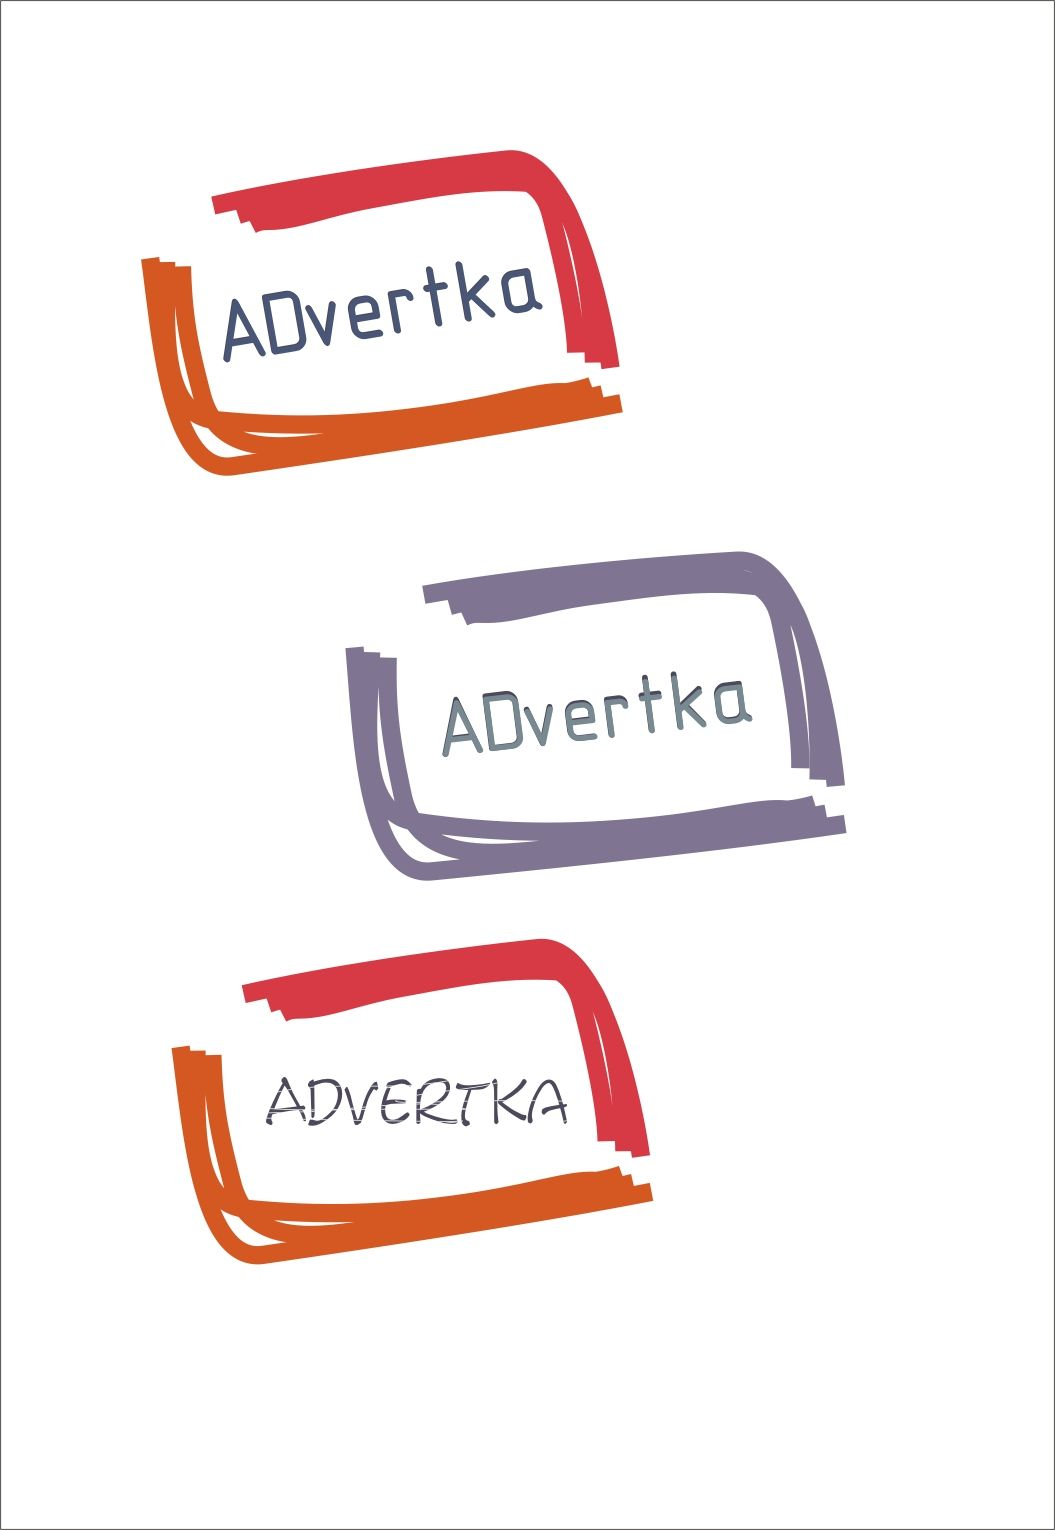 логотип для интернет агентства ADvertka - дизайнер samneu